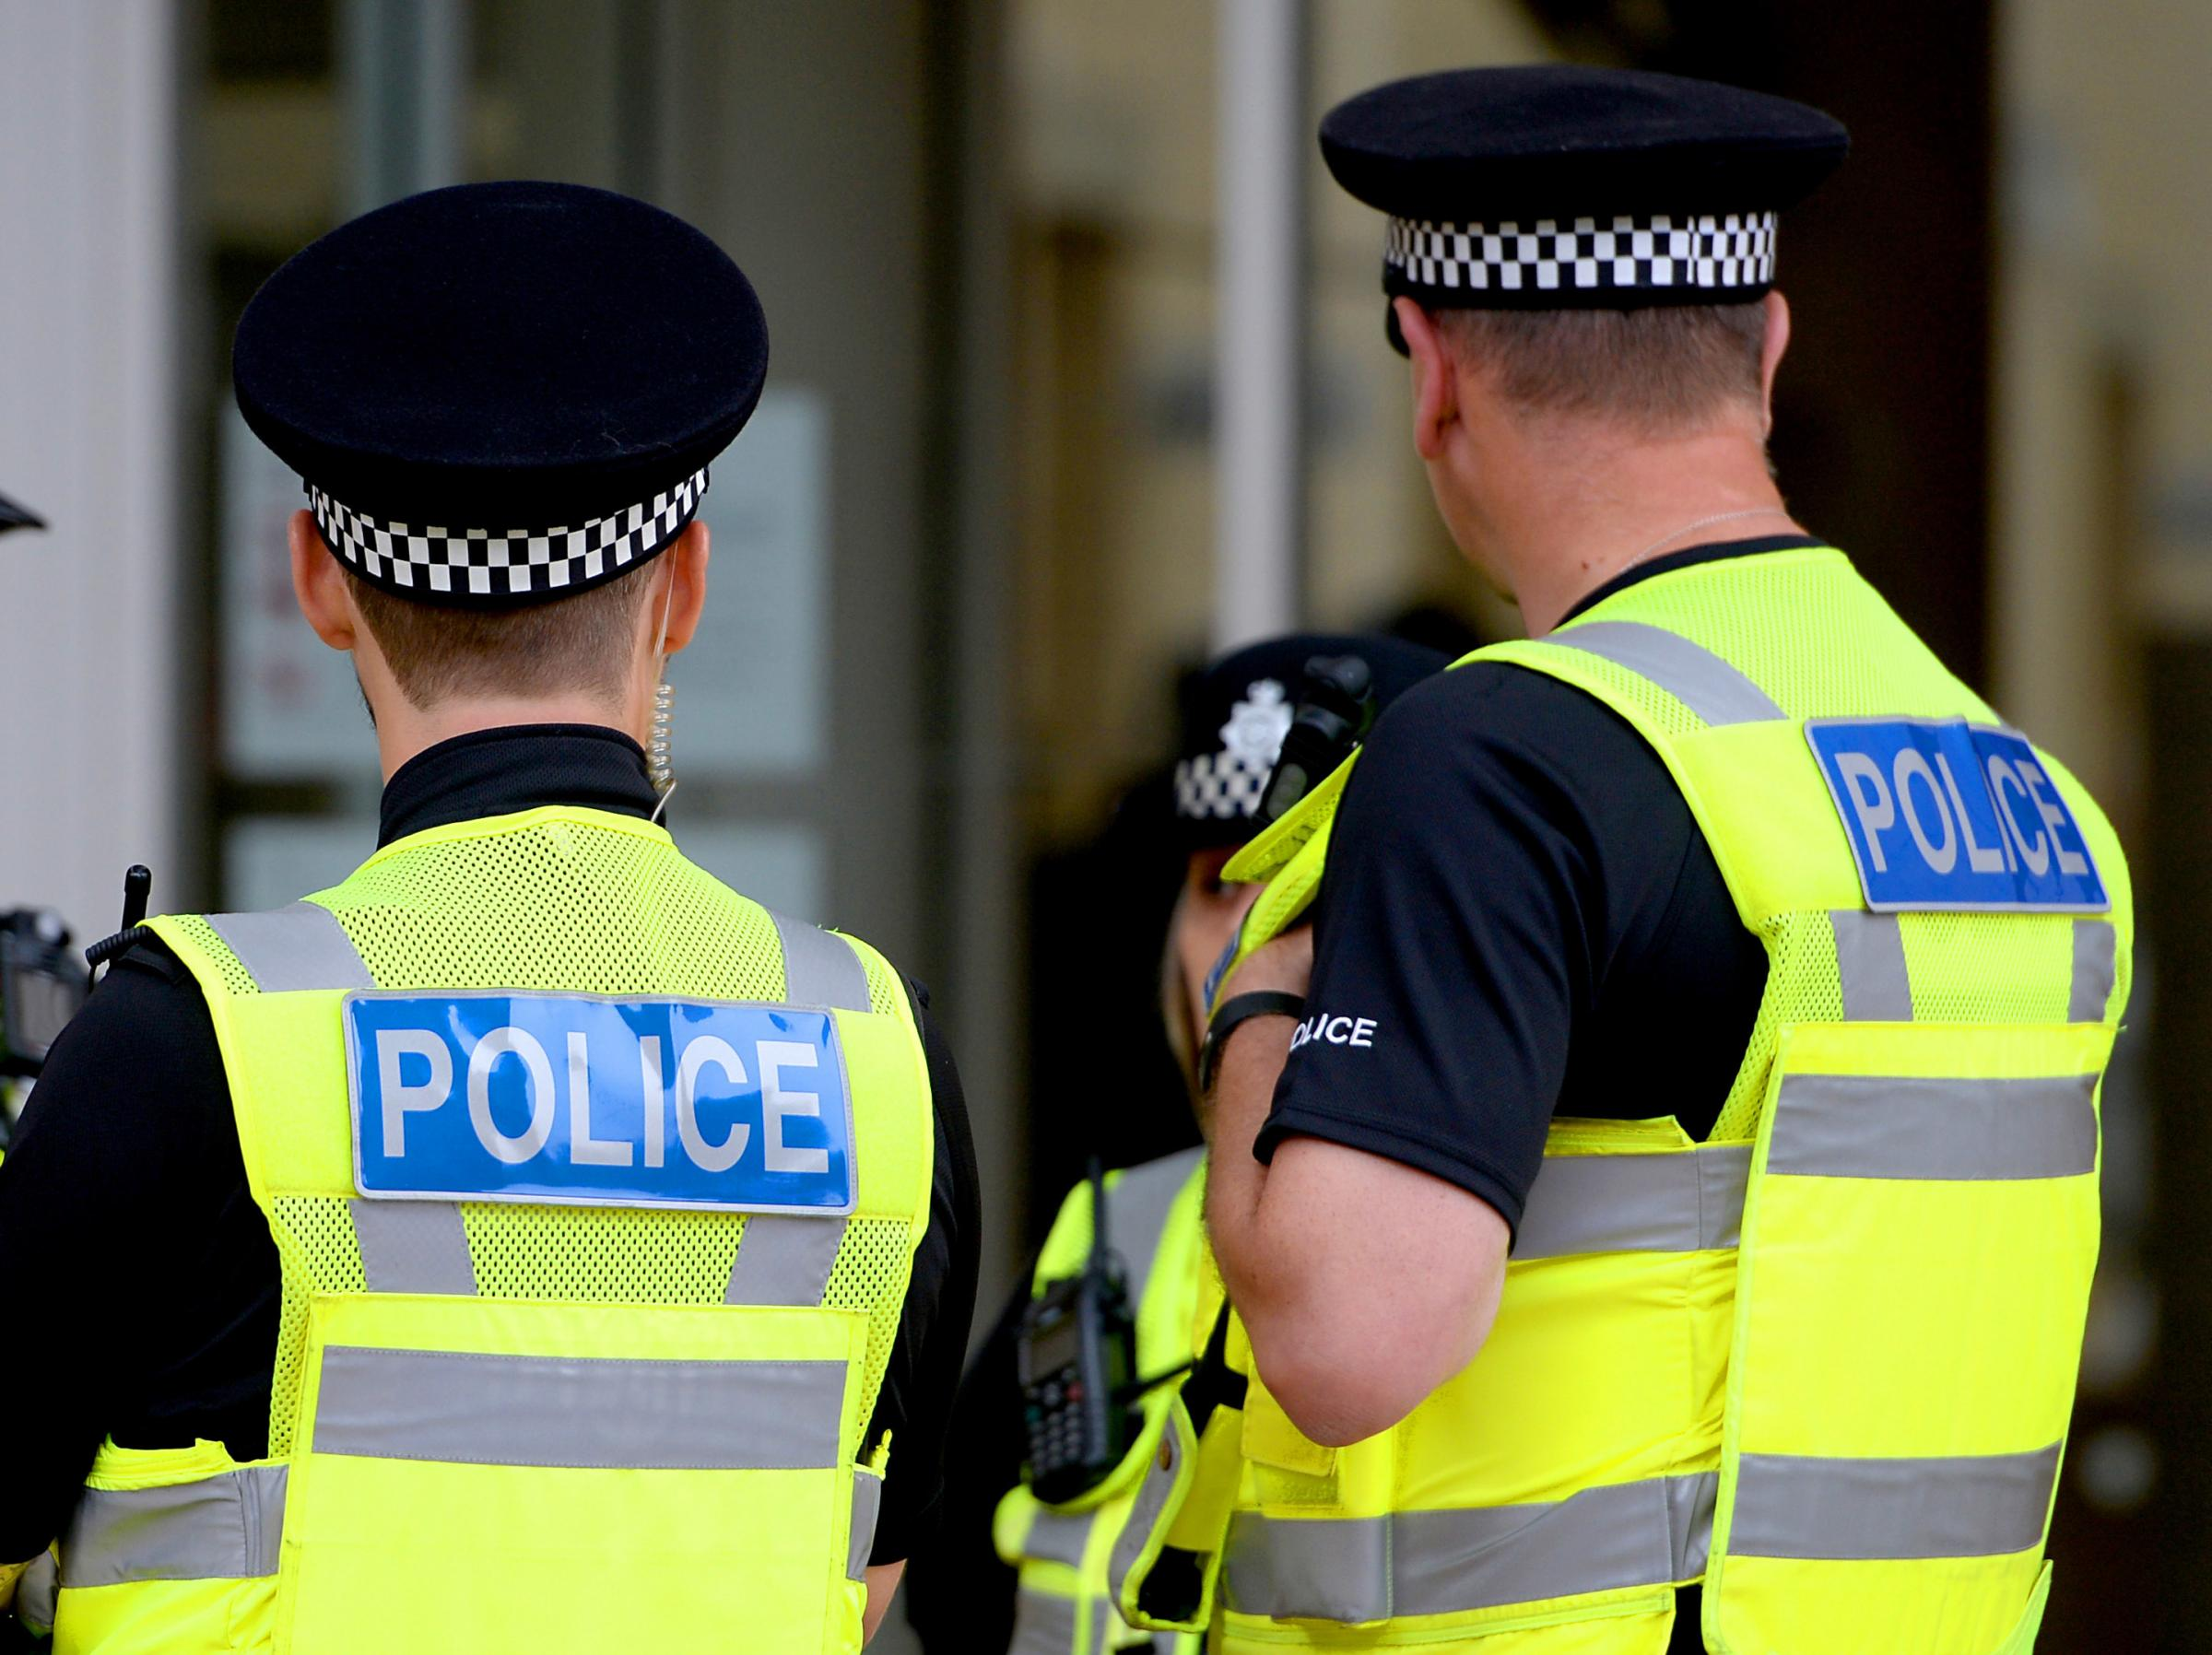 Embargoed to 0001 Tuesday August 07 File photo dated 15/09/16 of police officers. Nearly one in 12 rank-and-file police officers has taken a second job to boost their income, new research suggests.